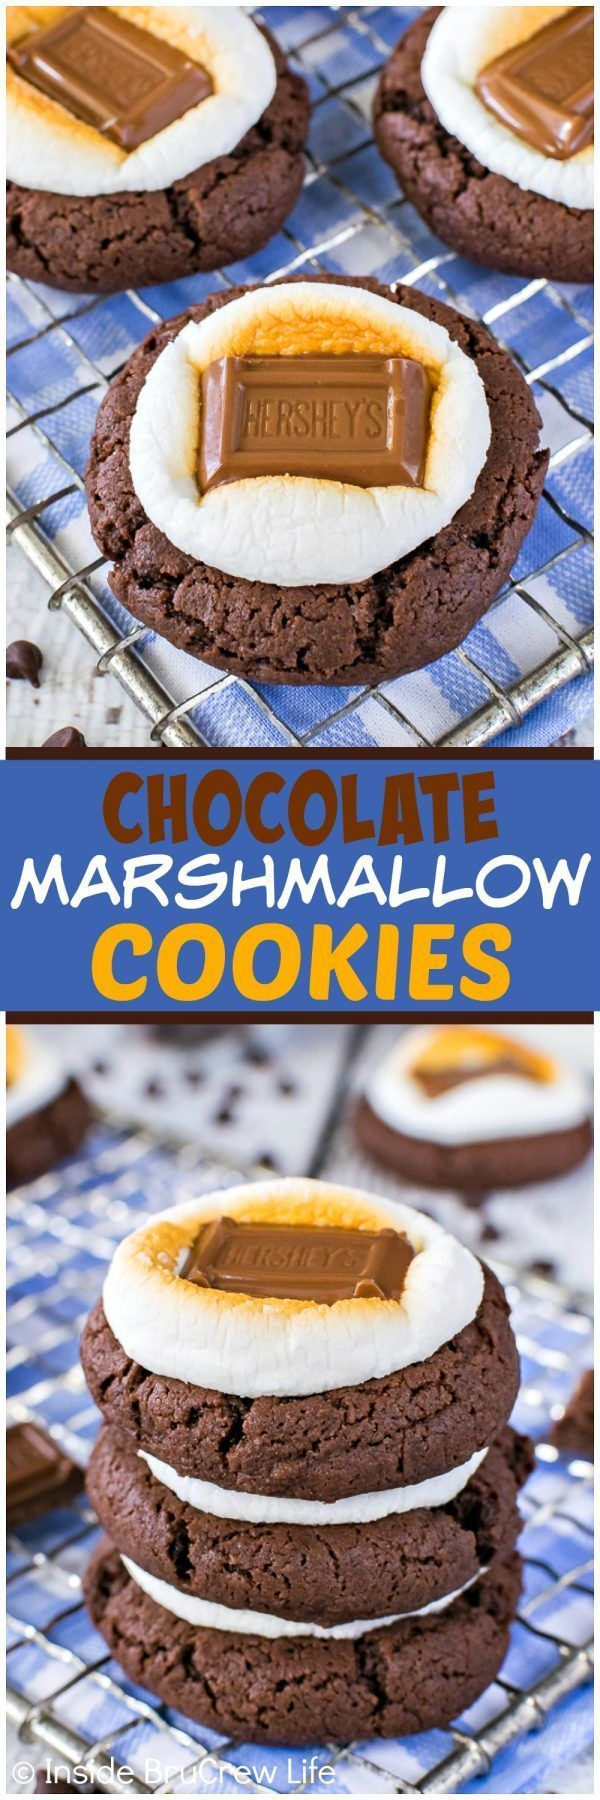 Easy Chocolate Marshmallow Cookies - toasted marshmallows and candy bars add a fun summer flair to these cookies.  Great recipe for picnics or parties! #chocolatemarshmallowcookies